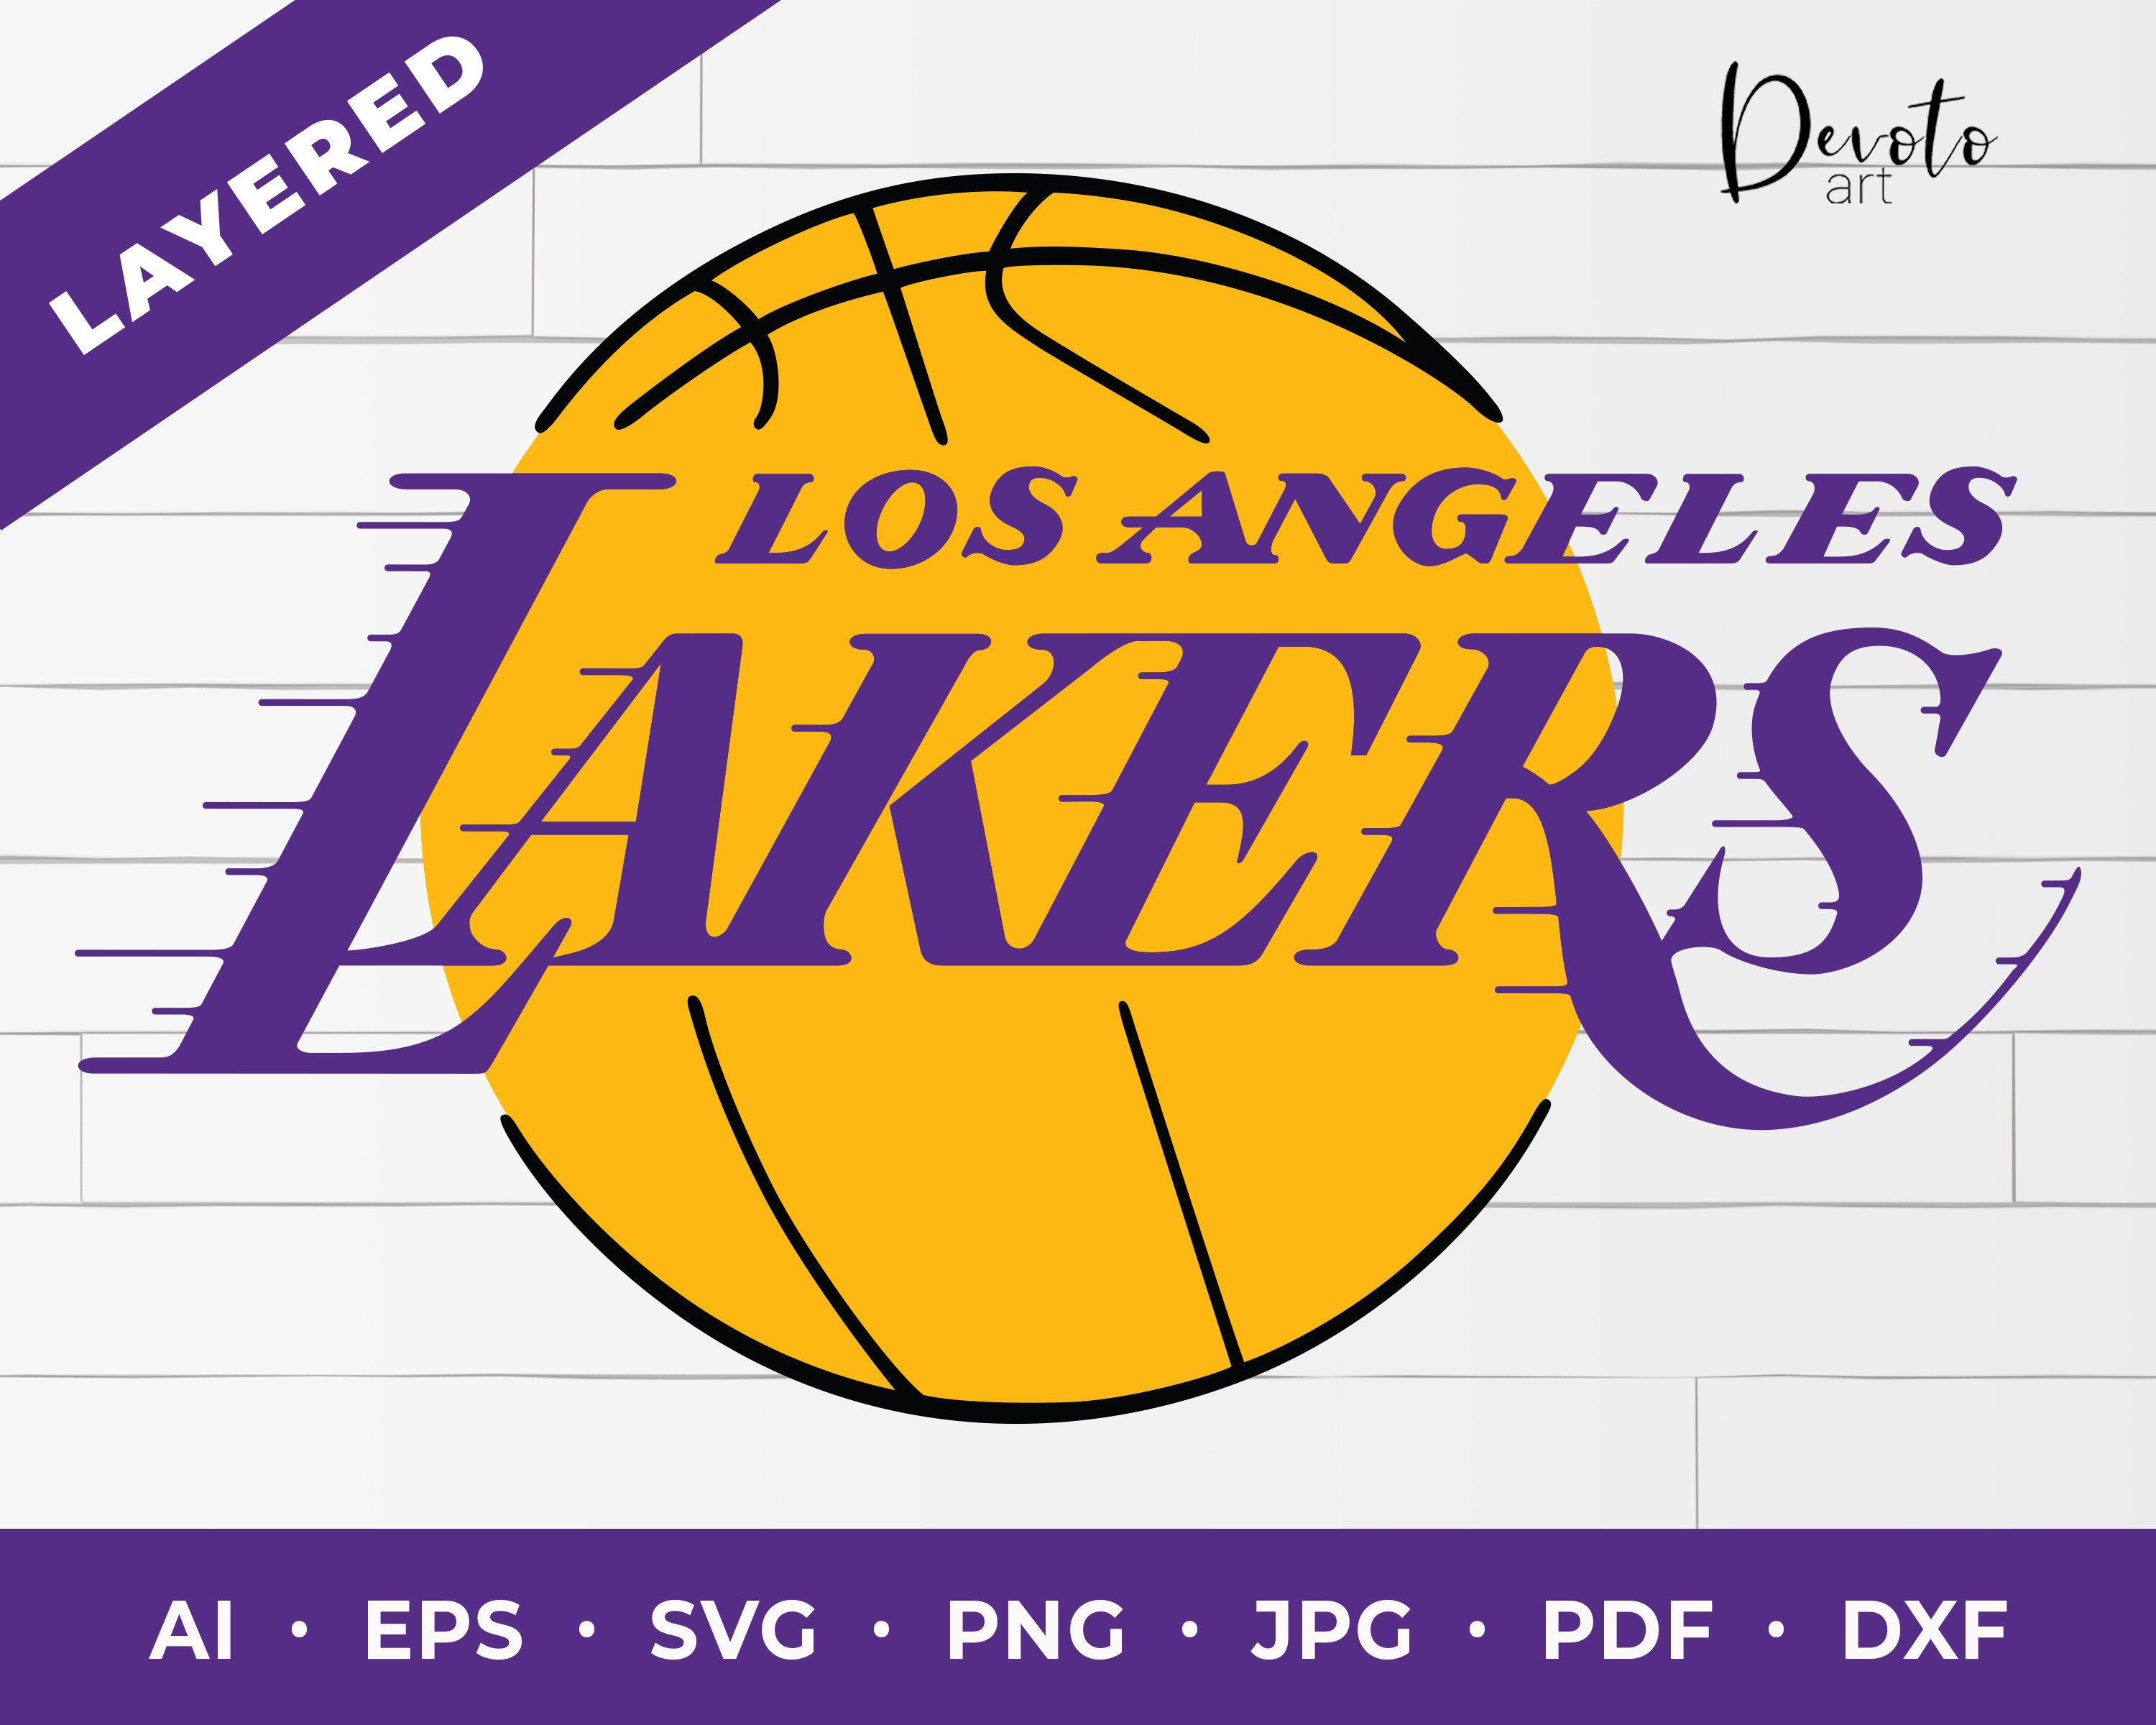 Los Angeles Lakers Svg Lakers Svg La Lakers Logo Lakers Logo Svg La Lakeres Cricut La La In 2020 Lakers Logo Los Angeles Lakers Logo Los Angeles Lakers Basketball